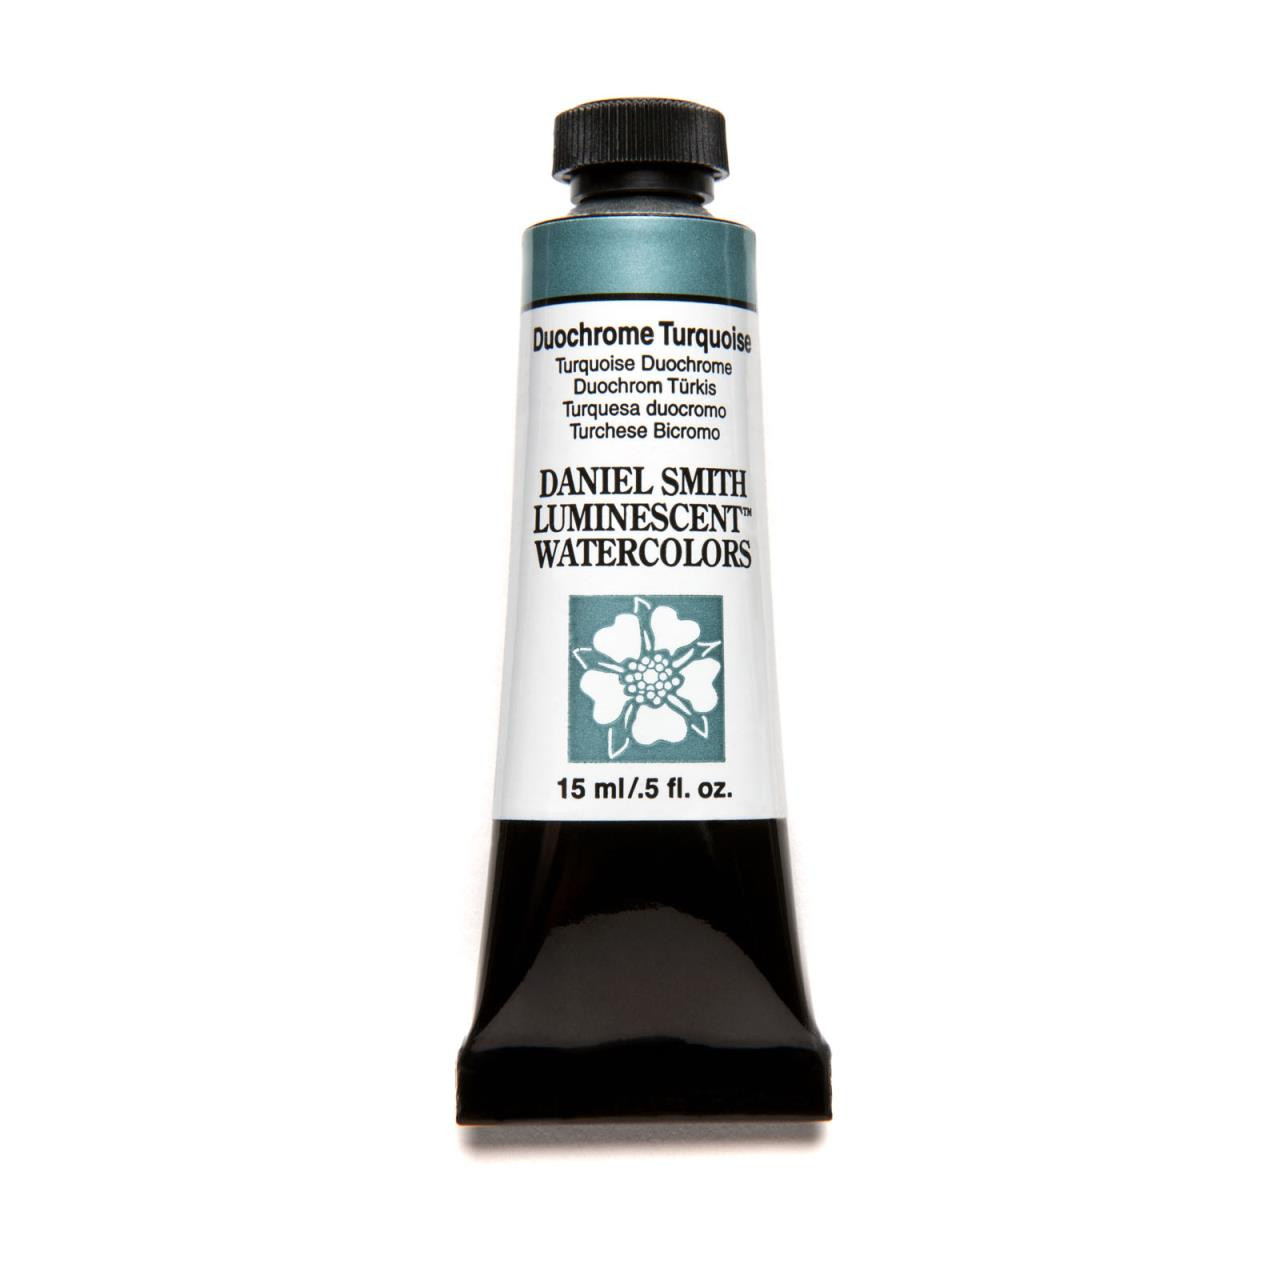 Duochrome Turquoise (Luminescent), DANIEL SMITH Extra Fine Watercolors 15ml Tubes -